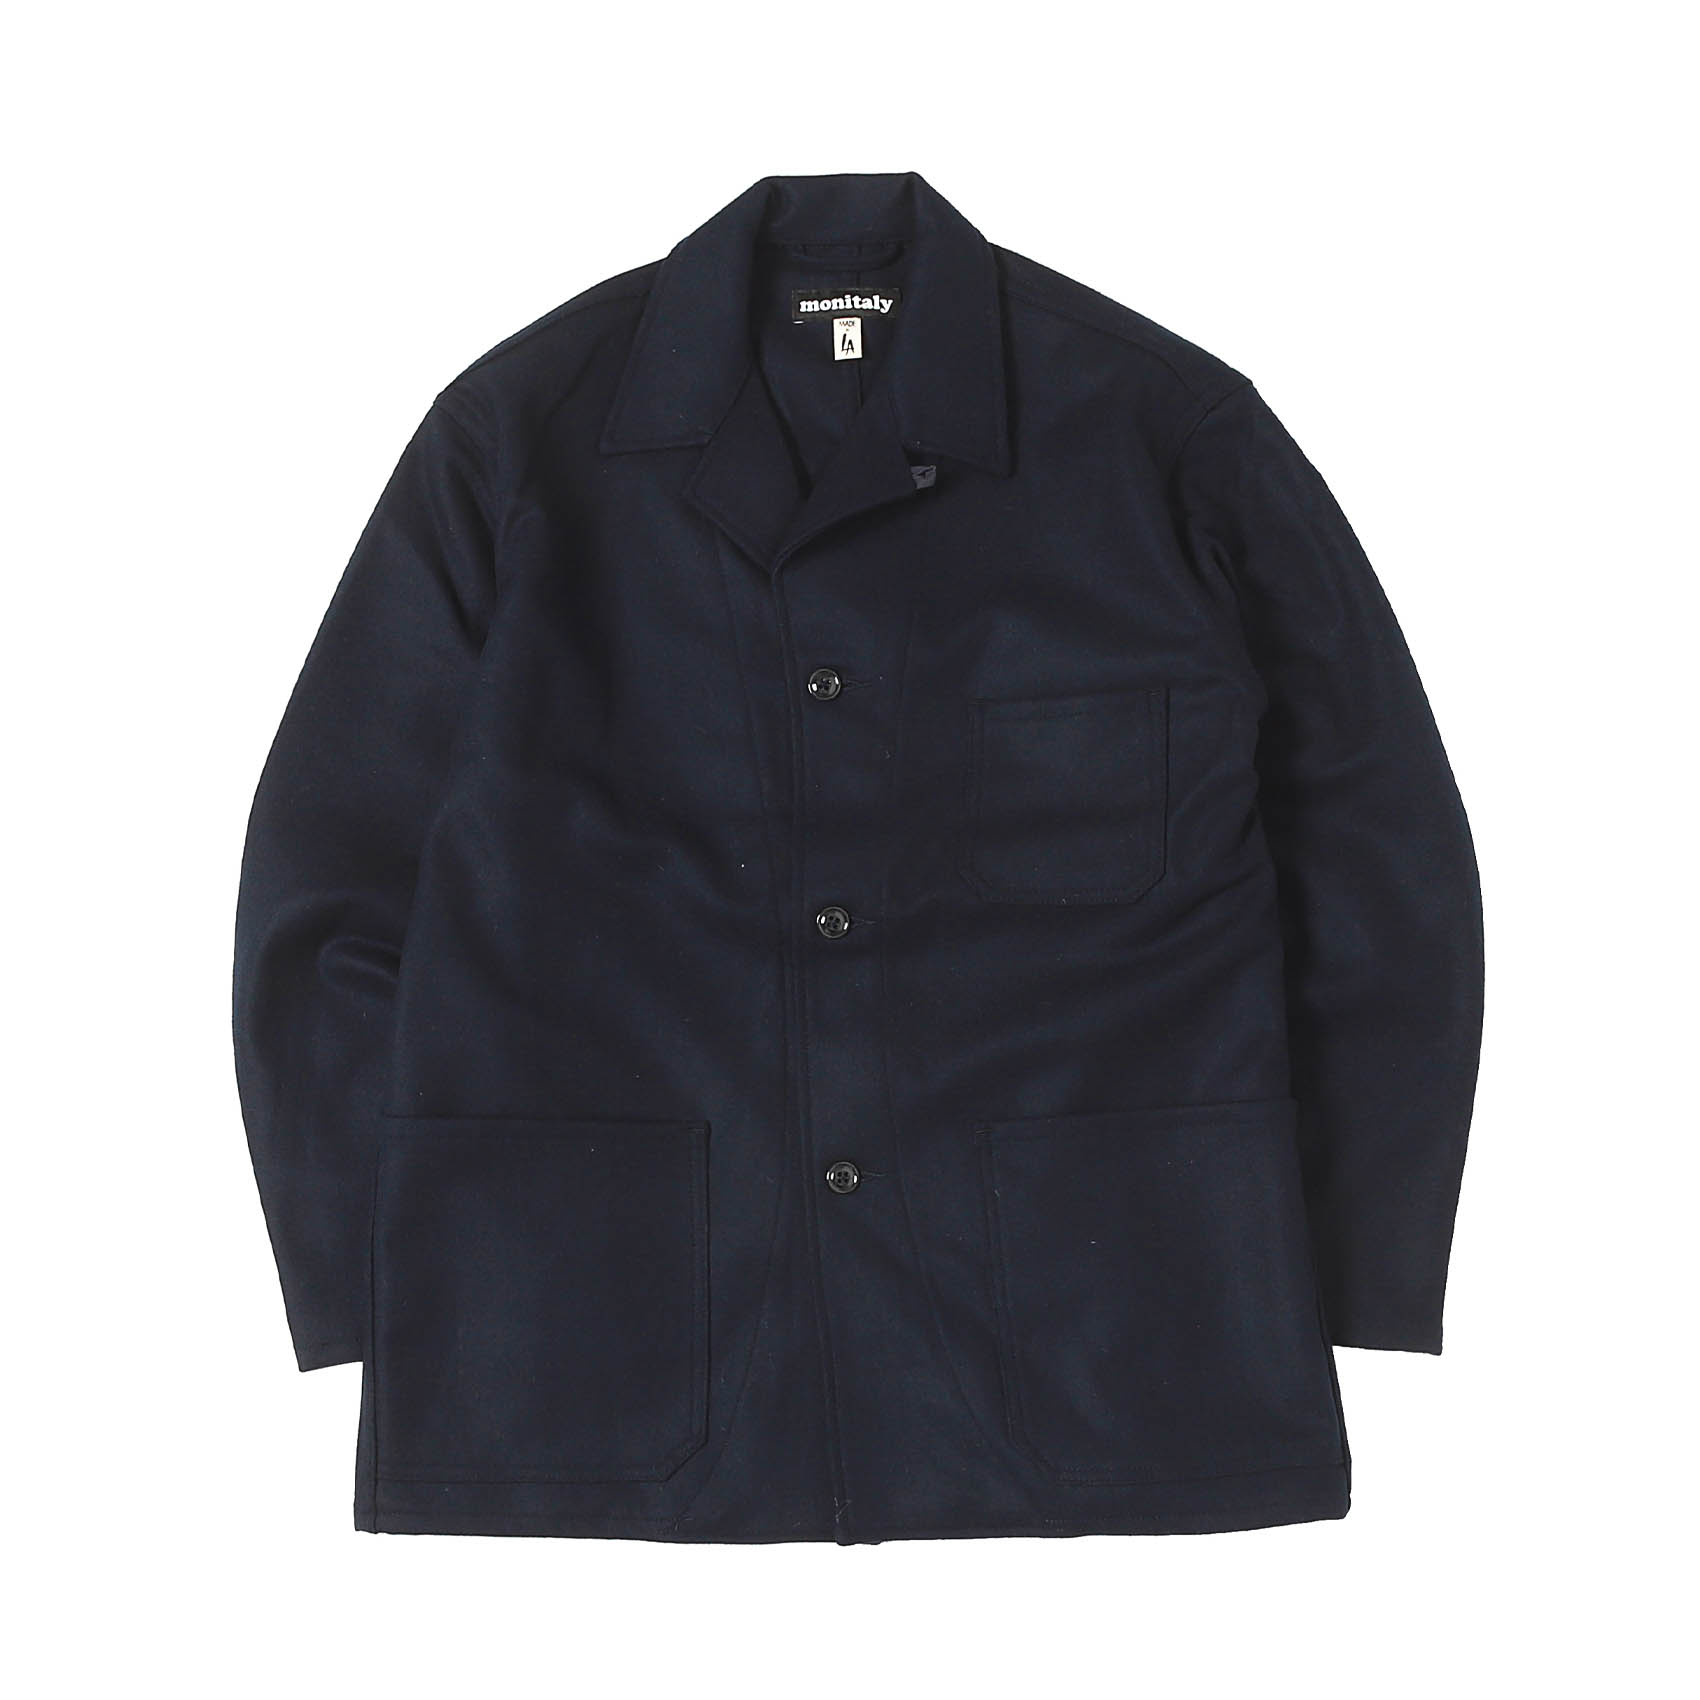 WOOL ITALIAN JAIL JACKET - NAVY